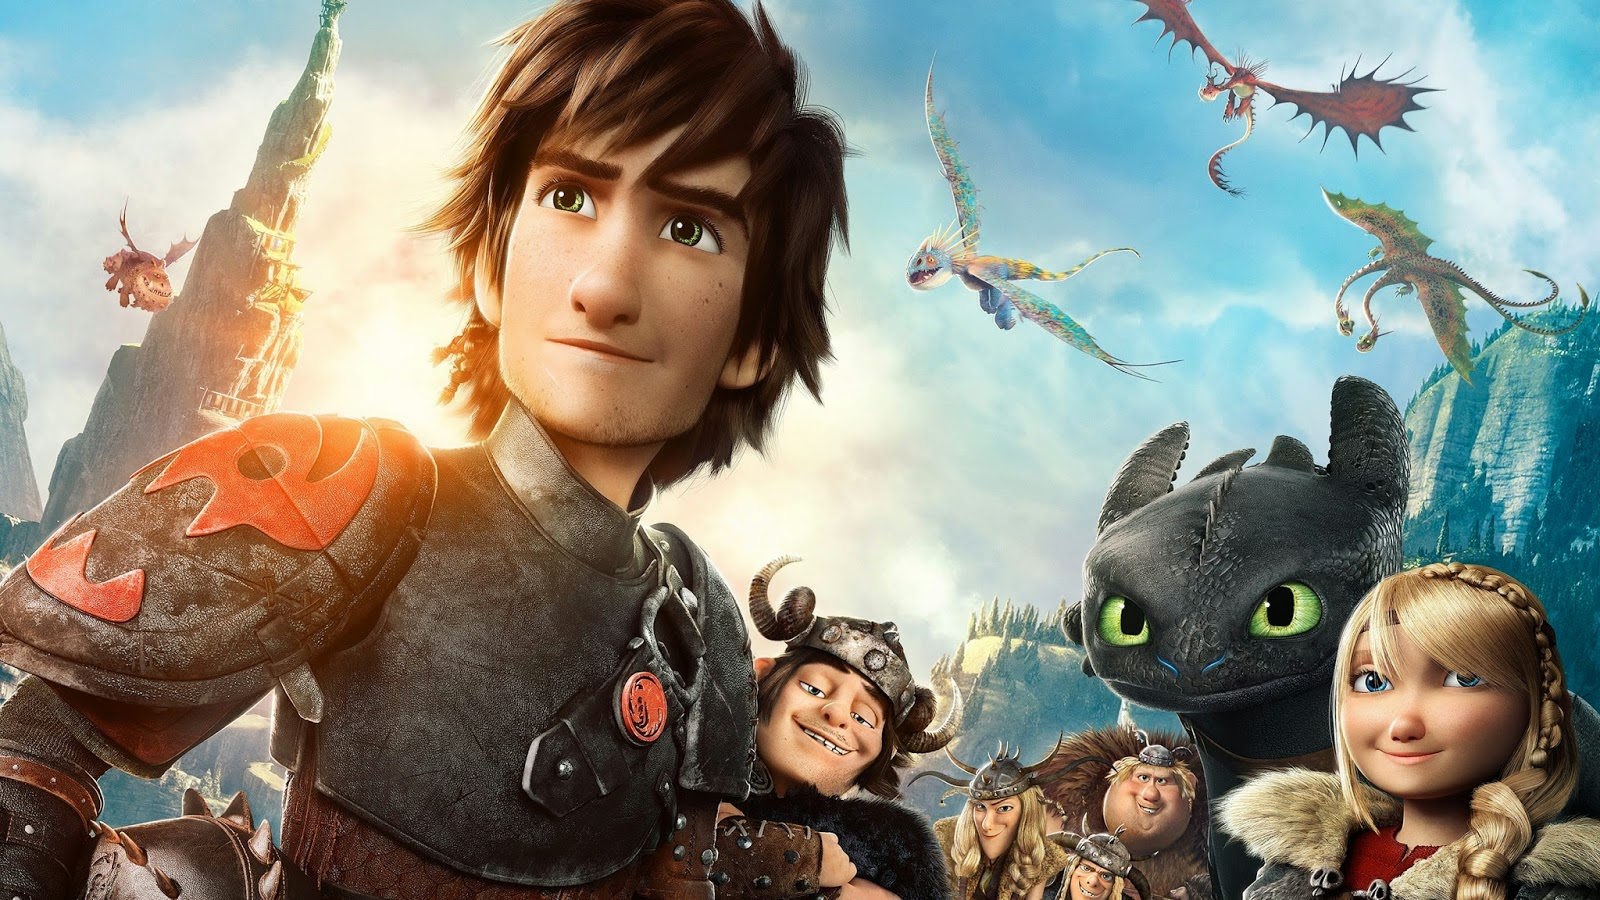 http://www.forbes.com/sites/briansolomon/2014/06/16/dreamworks-crushed-on-how-to-train-your-dragon-2-disappointment/